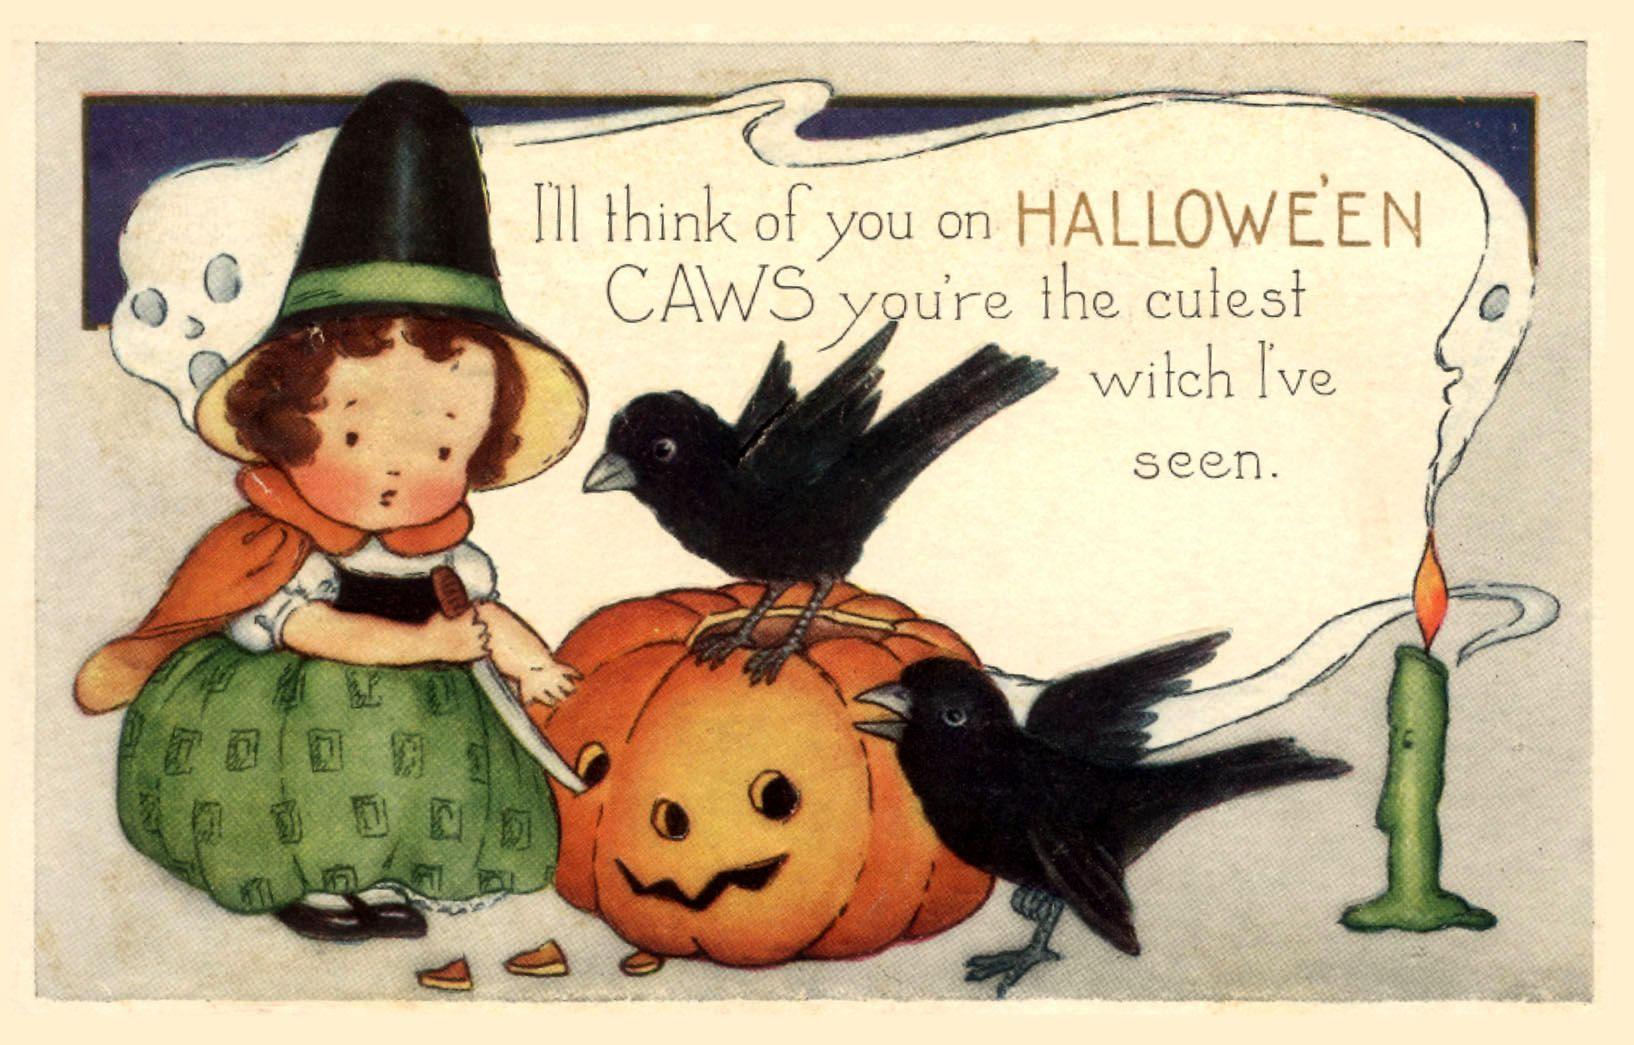 Since the candy has been in the stores for at least a month now, I guess it's time to start with Halloween crafts and decor. I thought this little vintage postcard was cute & I hope you find a fun way to use it this season. Please share your ideas! To download this free image, …